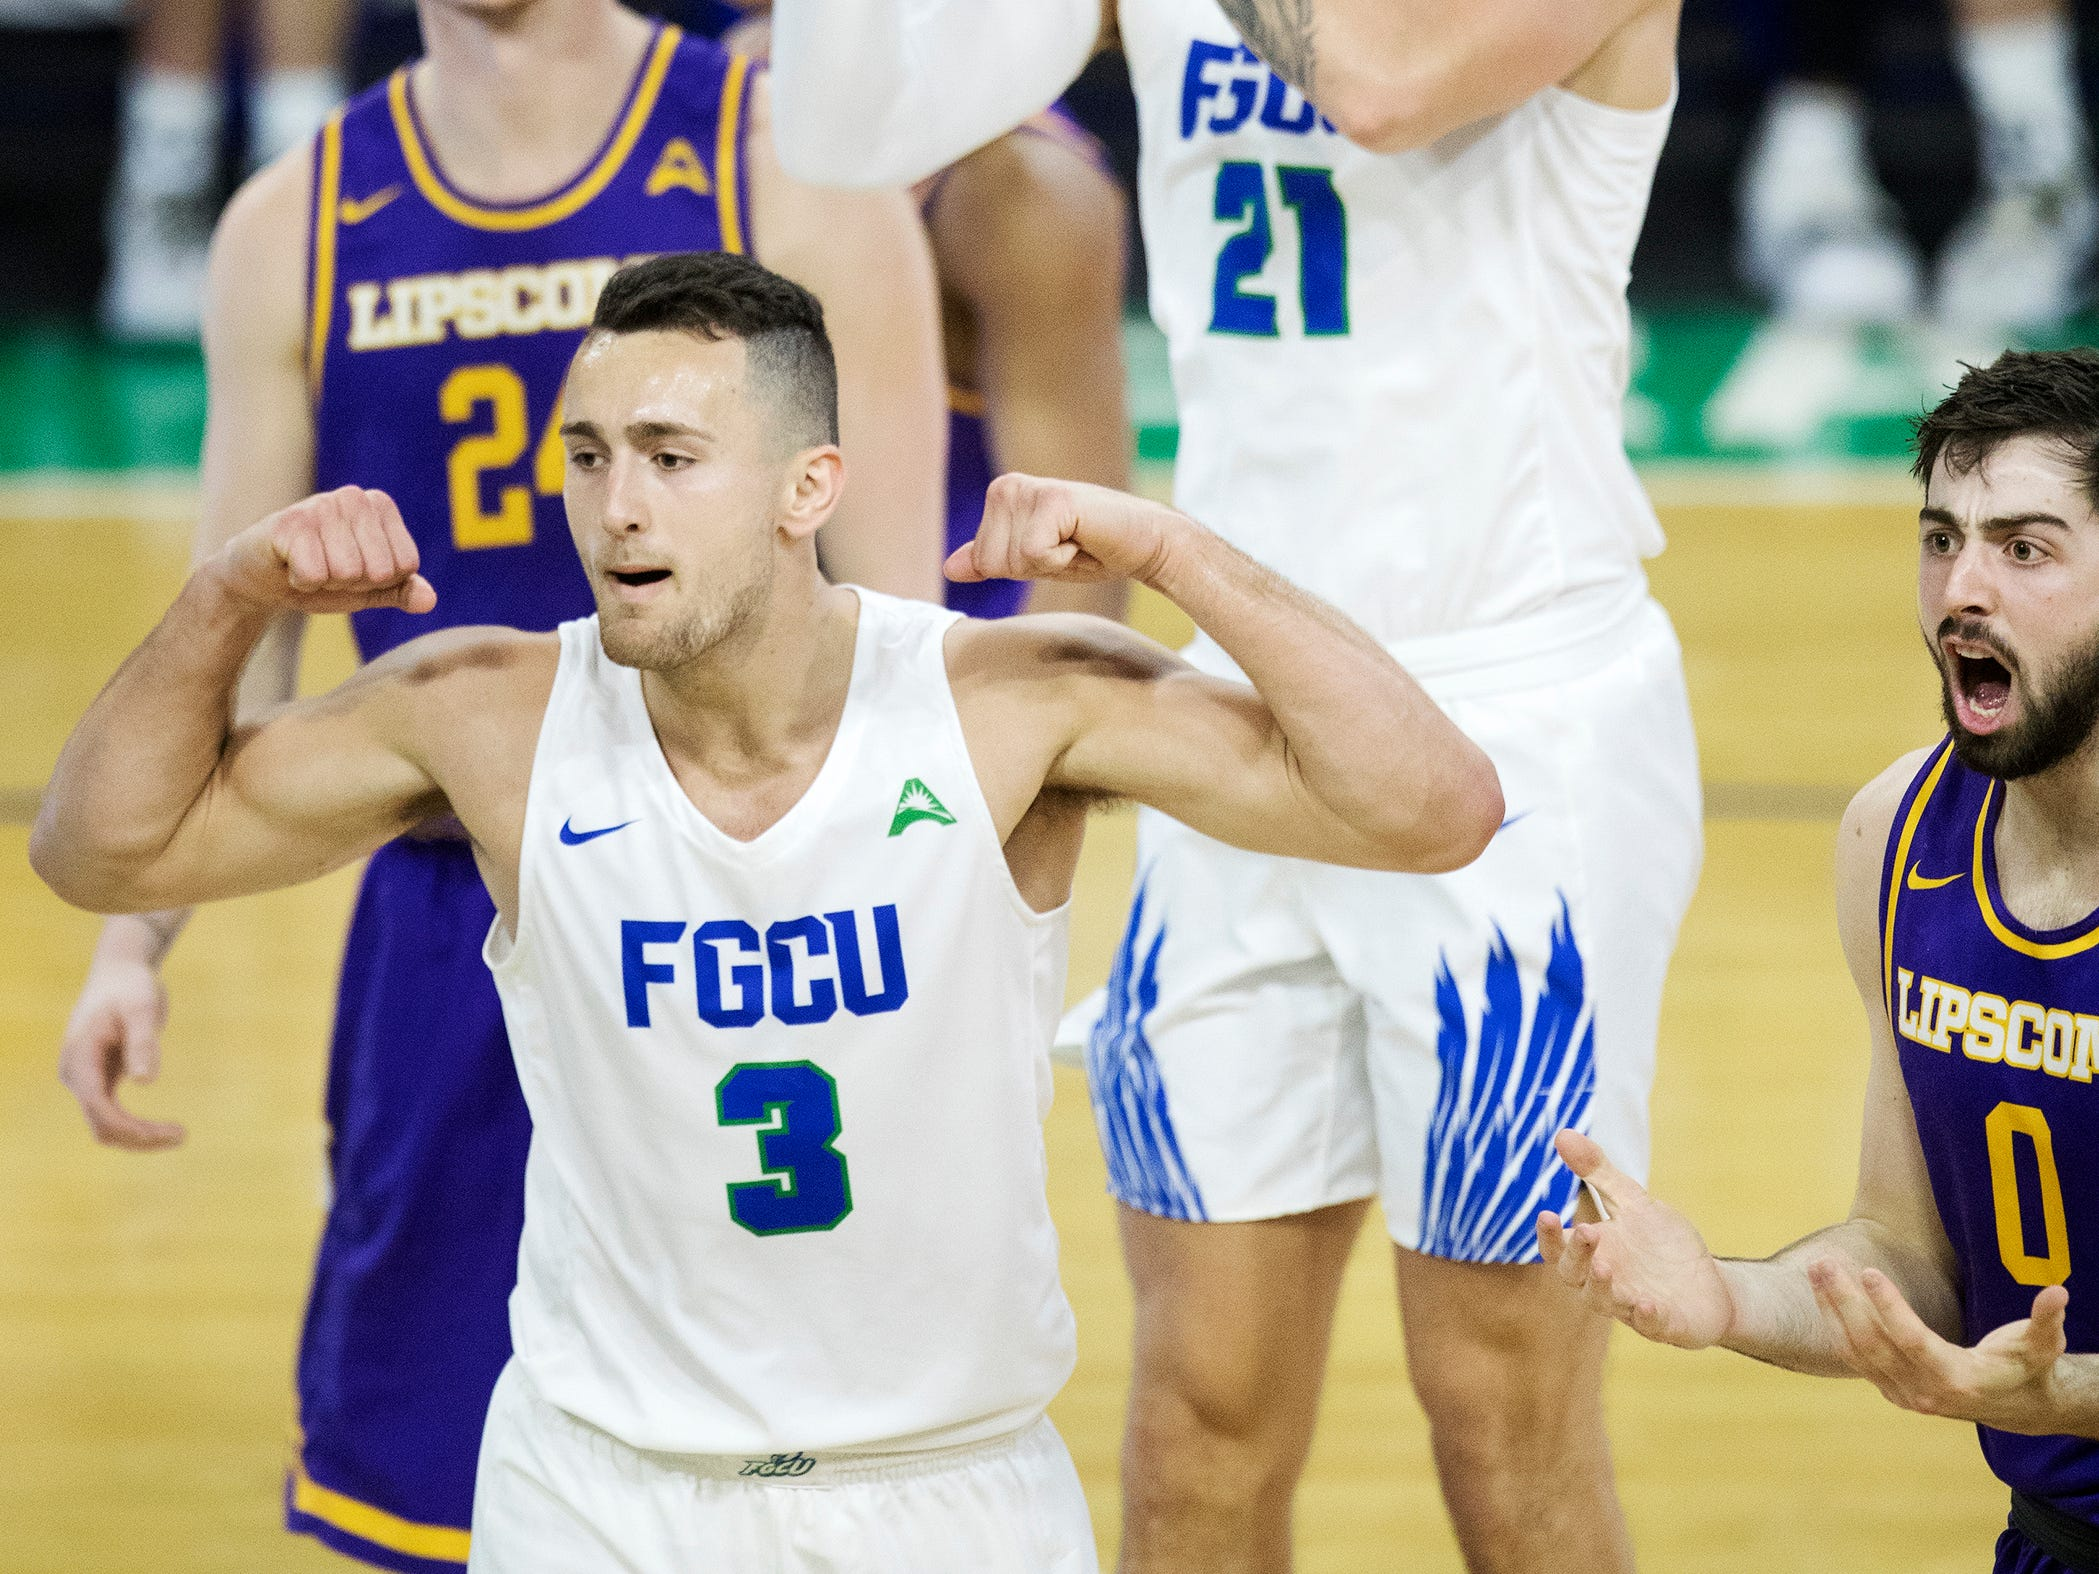 Florida Gulf Coast University's Christian Caryle celebrates scoring against Lipscomb recently at FGCU in Fort Myers. FGCU beat Lipscomb 67-61.